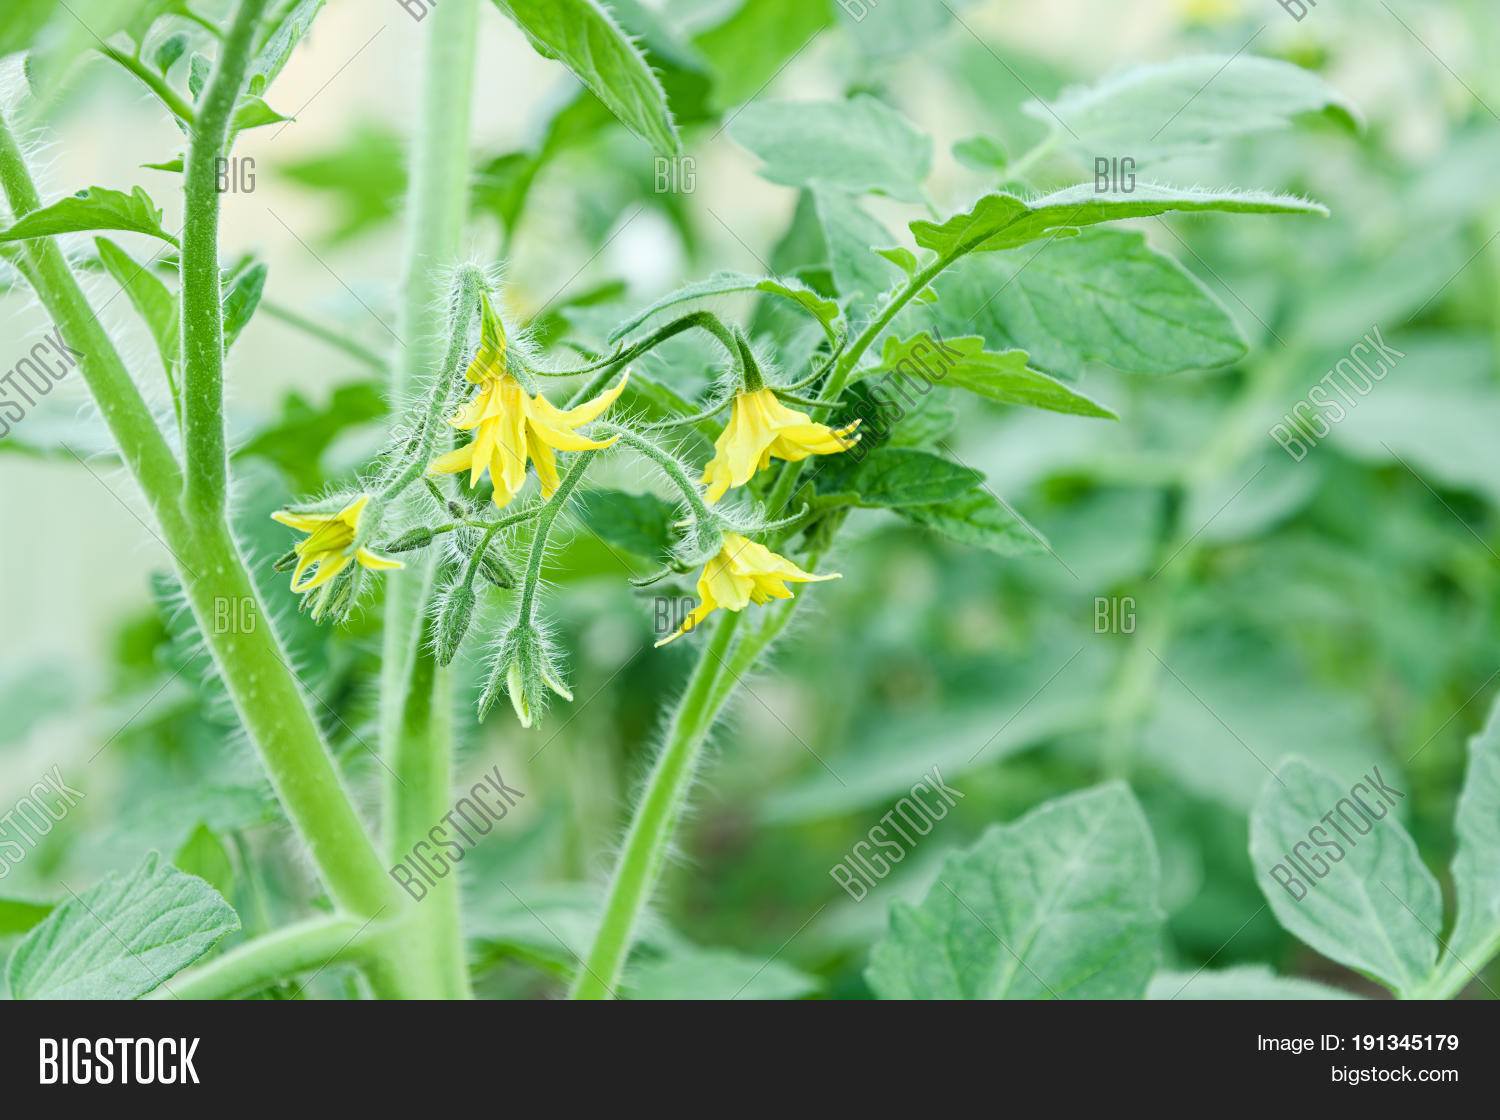 Small Flowers Yellow Image & Photo (Free Trial) | Bigstock